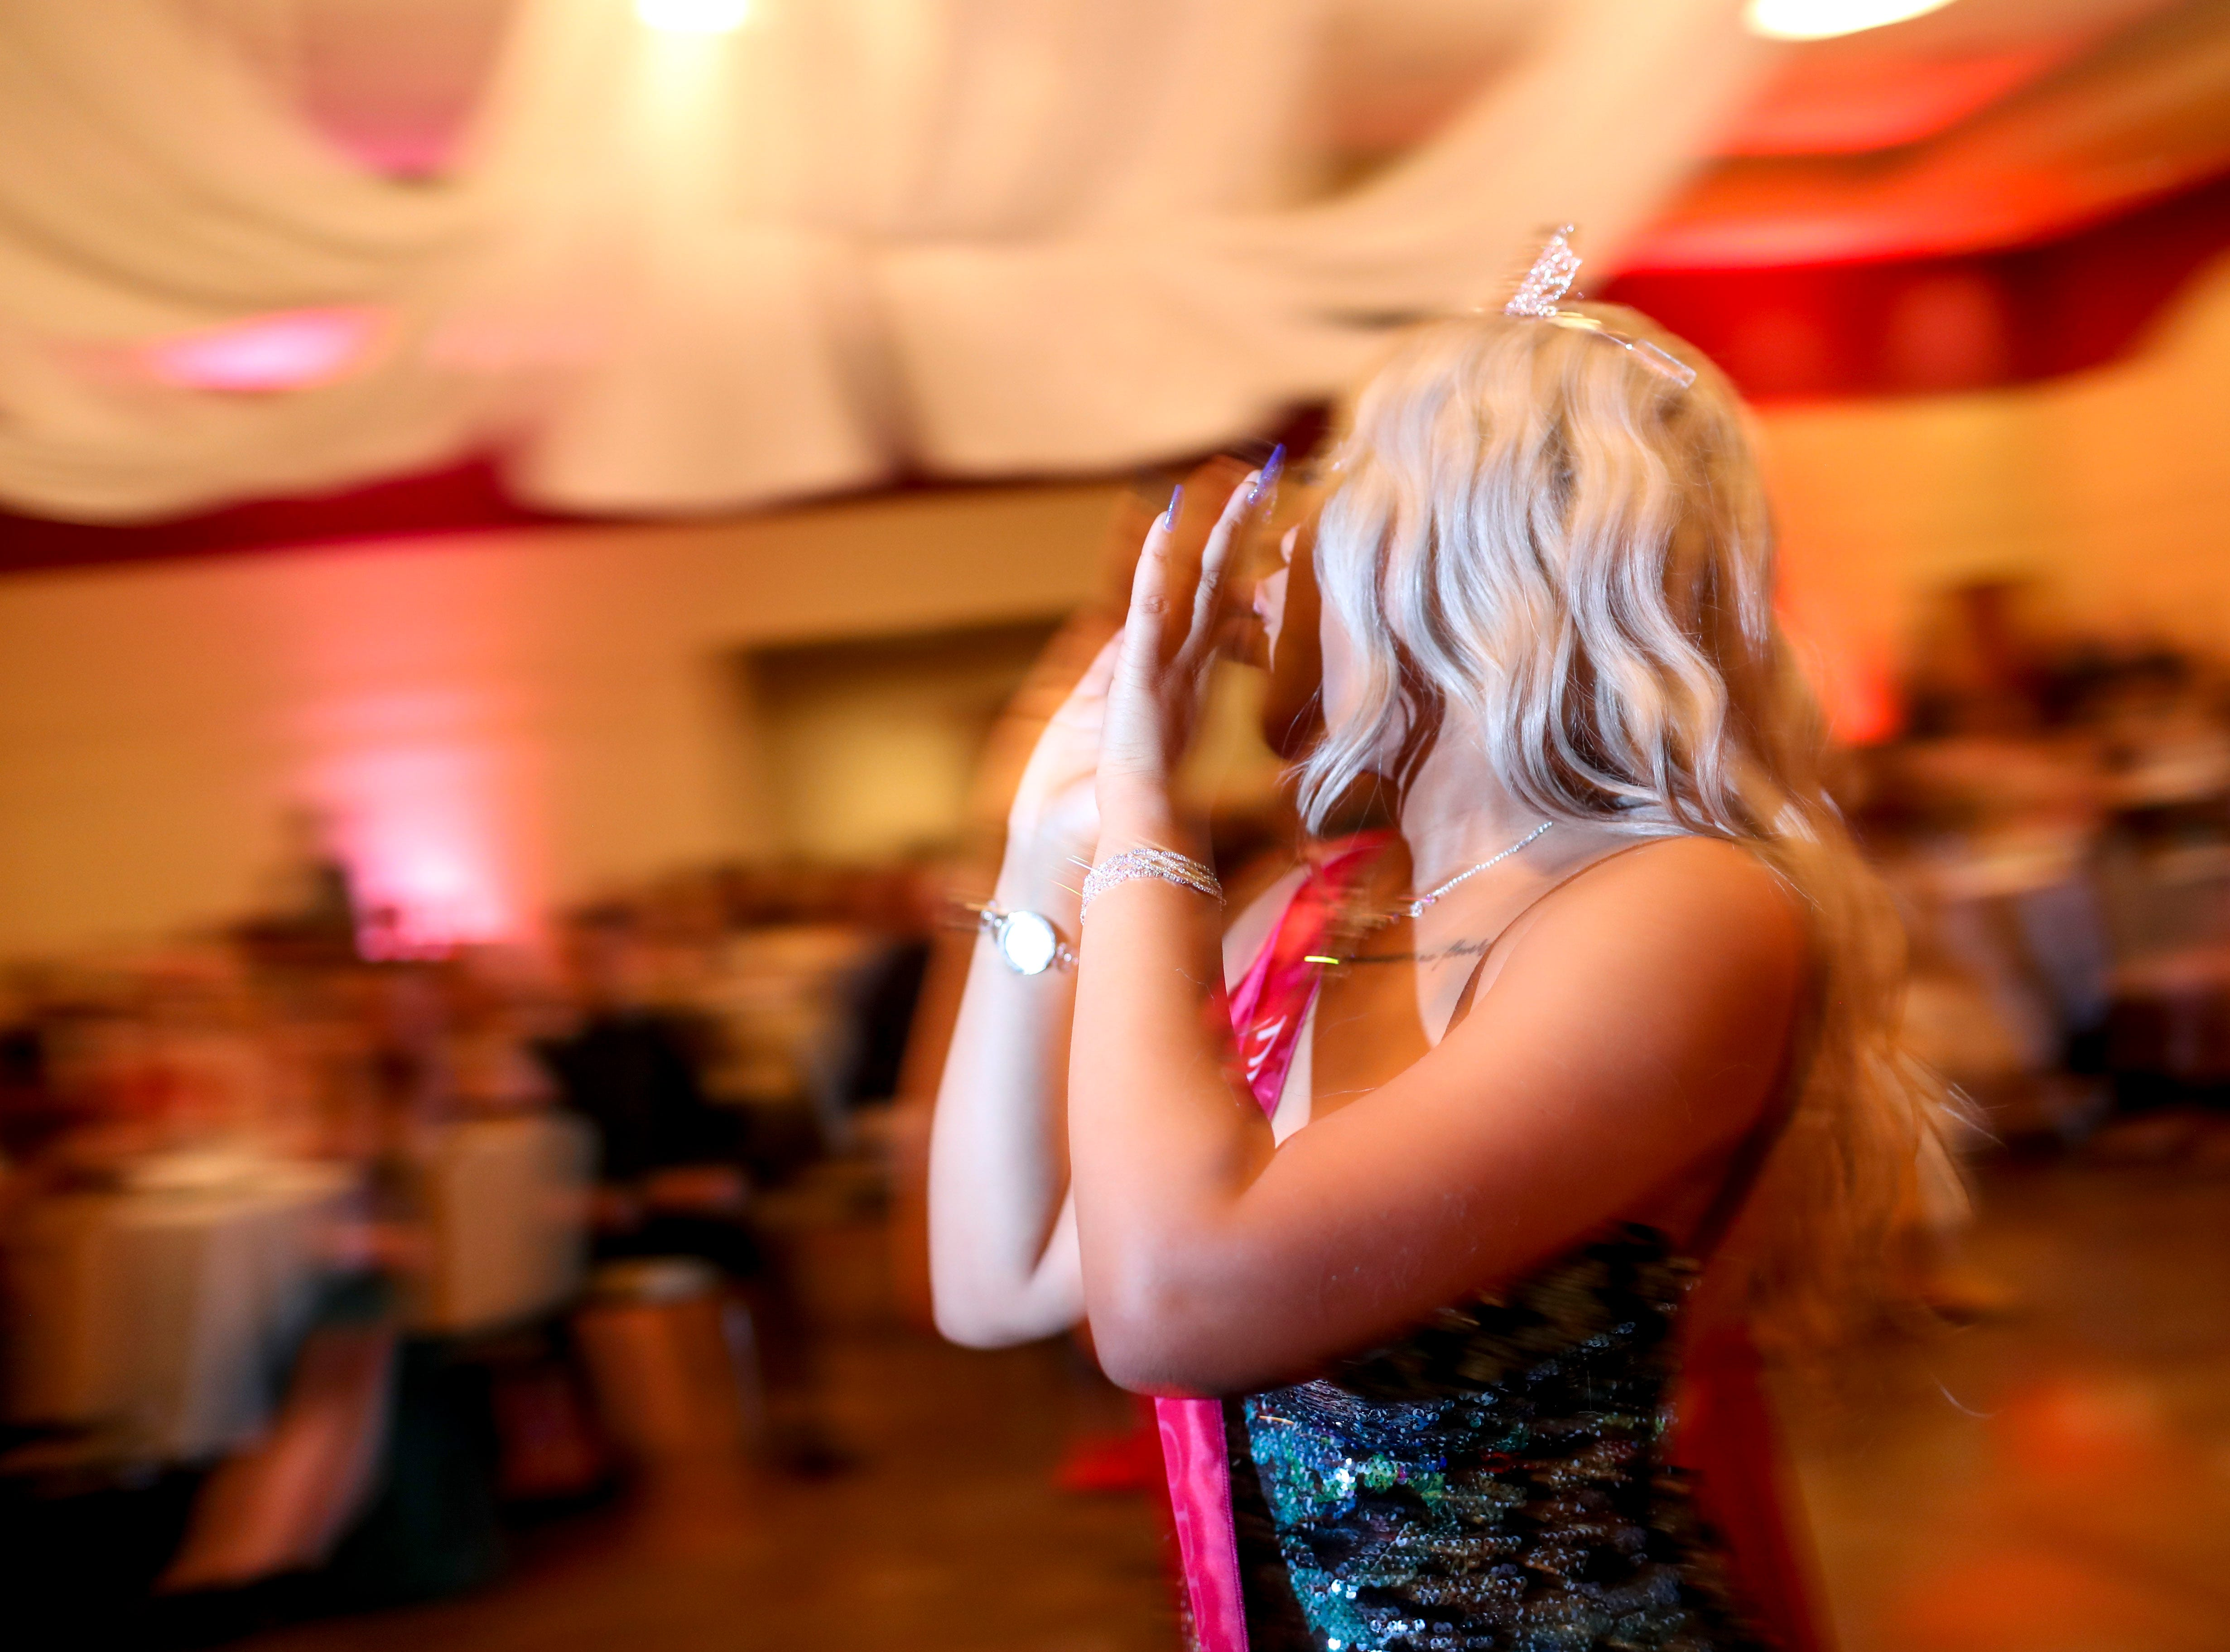 """Prom queen Adannis Delis-Luna dances in the center of the floor while hundreds of students from Kenwood High School celebrated their 2019 prom themed """"Cherish the Moment"""" at Valor Hall in Oak Grove, KY., on Saturday, May 4, 2019."""